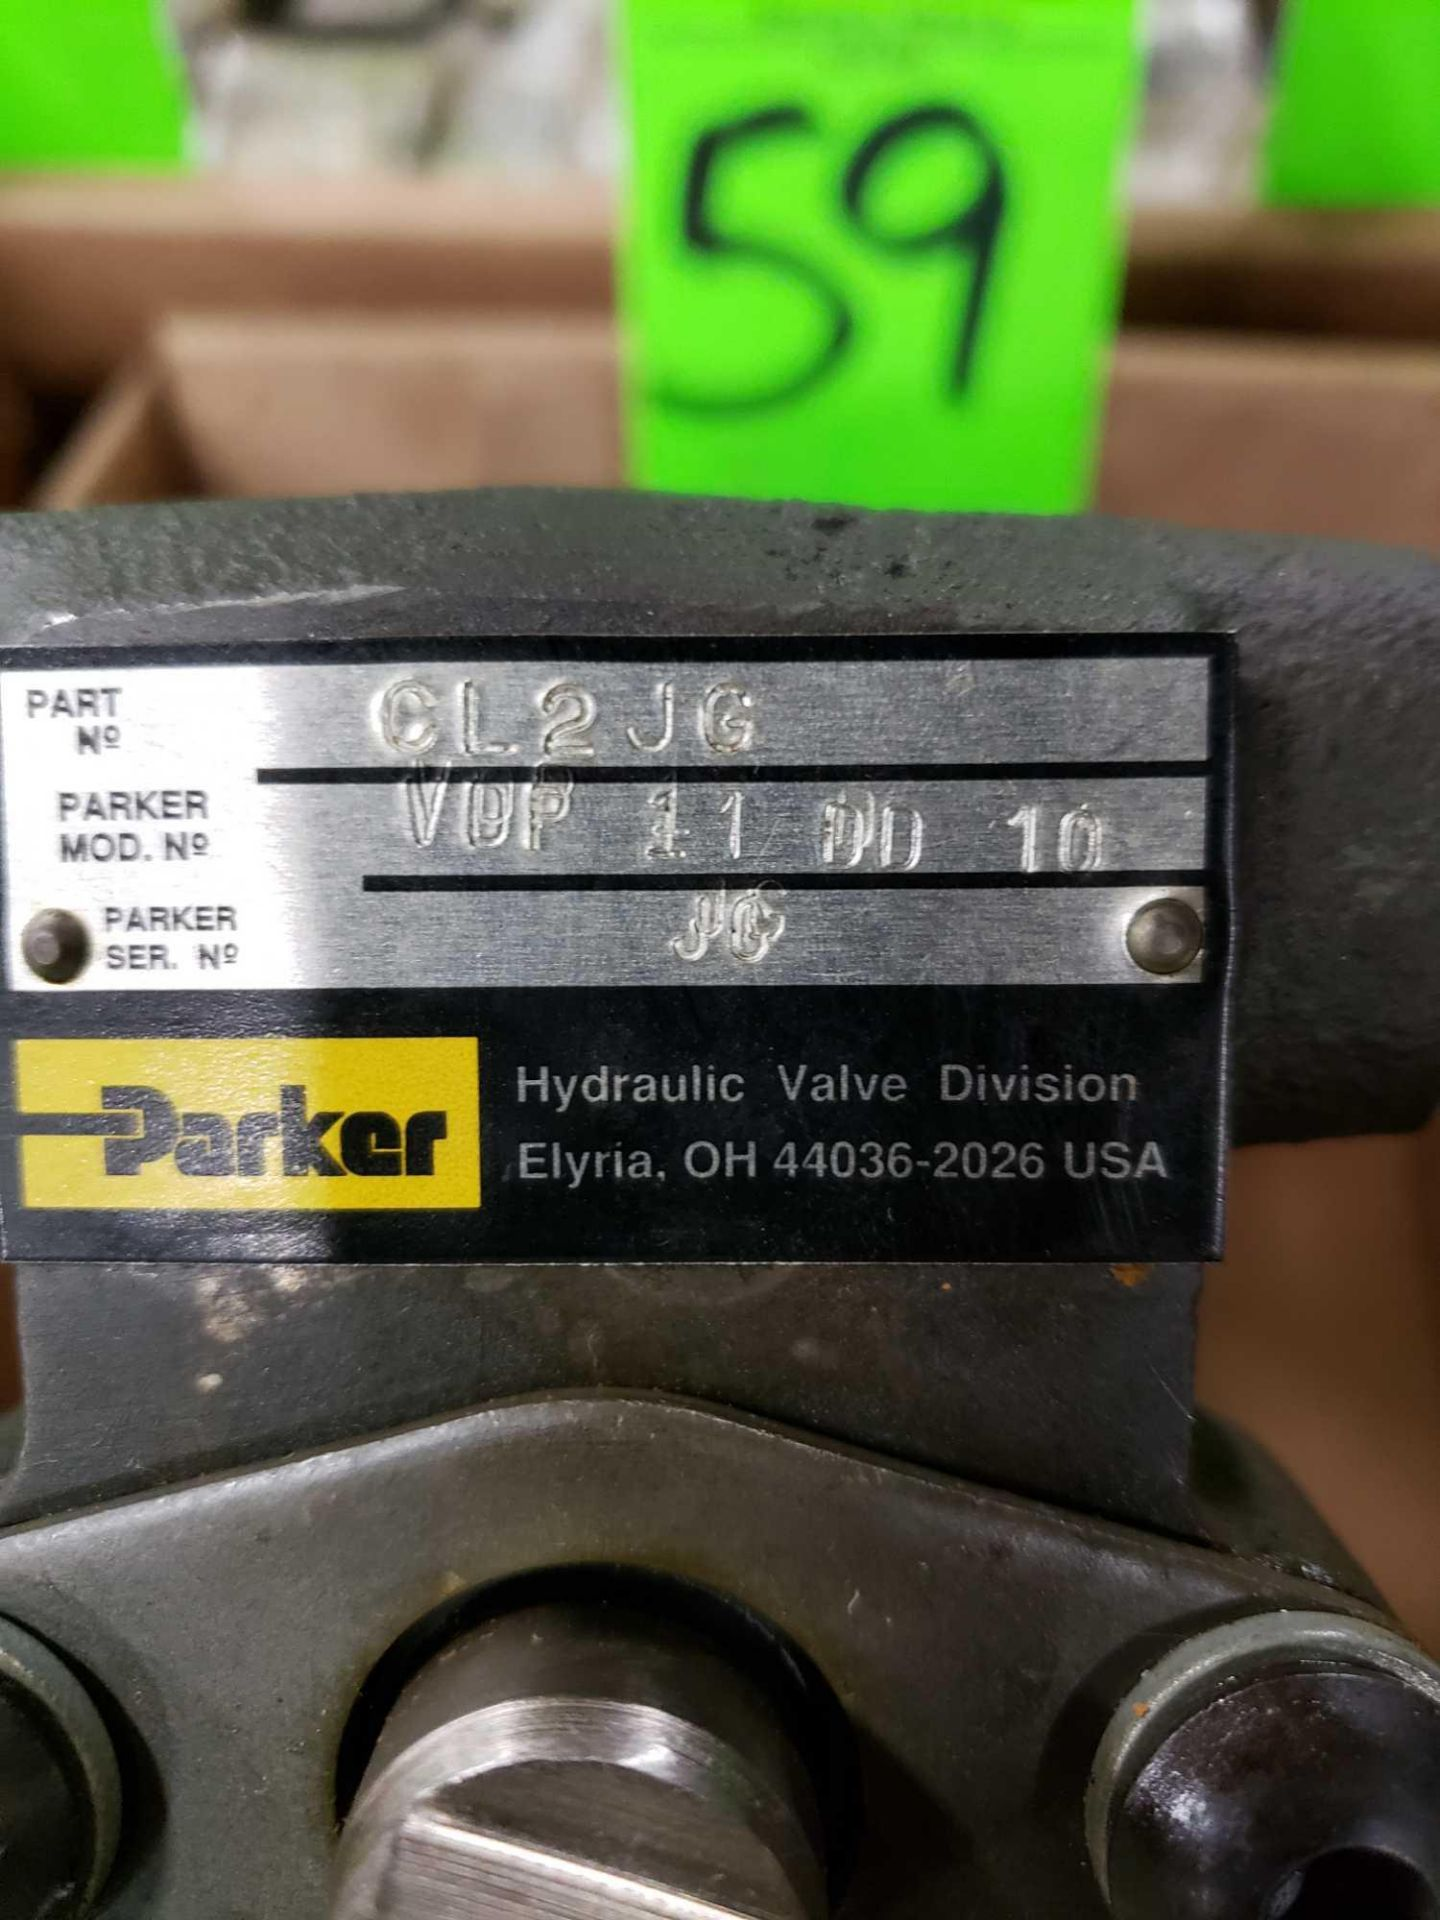 Lot 59 - Parker VDP-11-DD-10 hydraulic valve. Appears new.